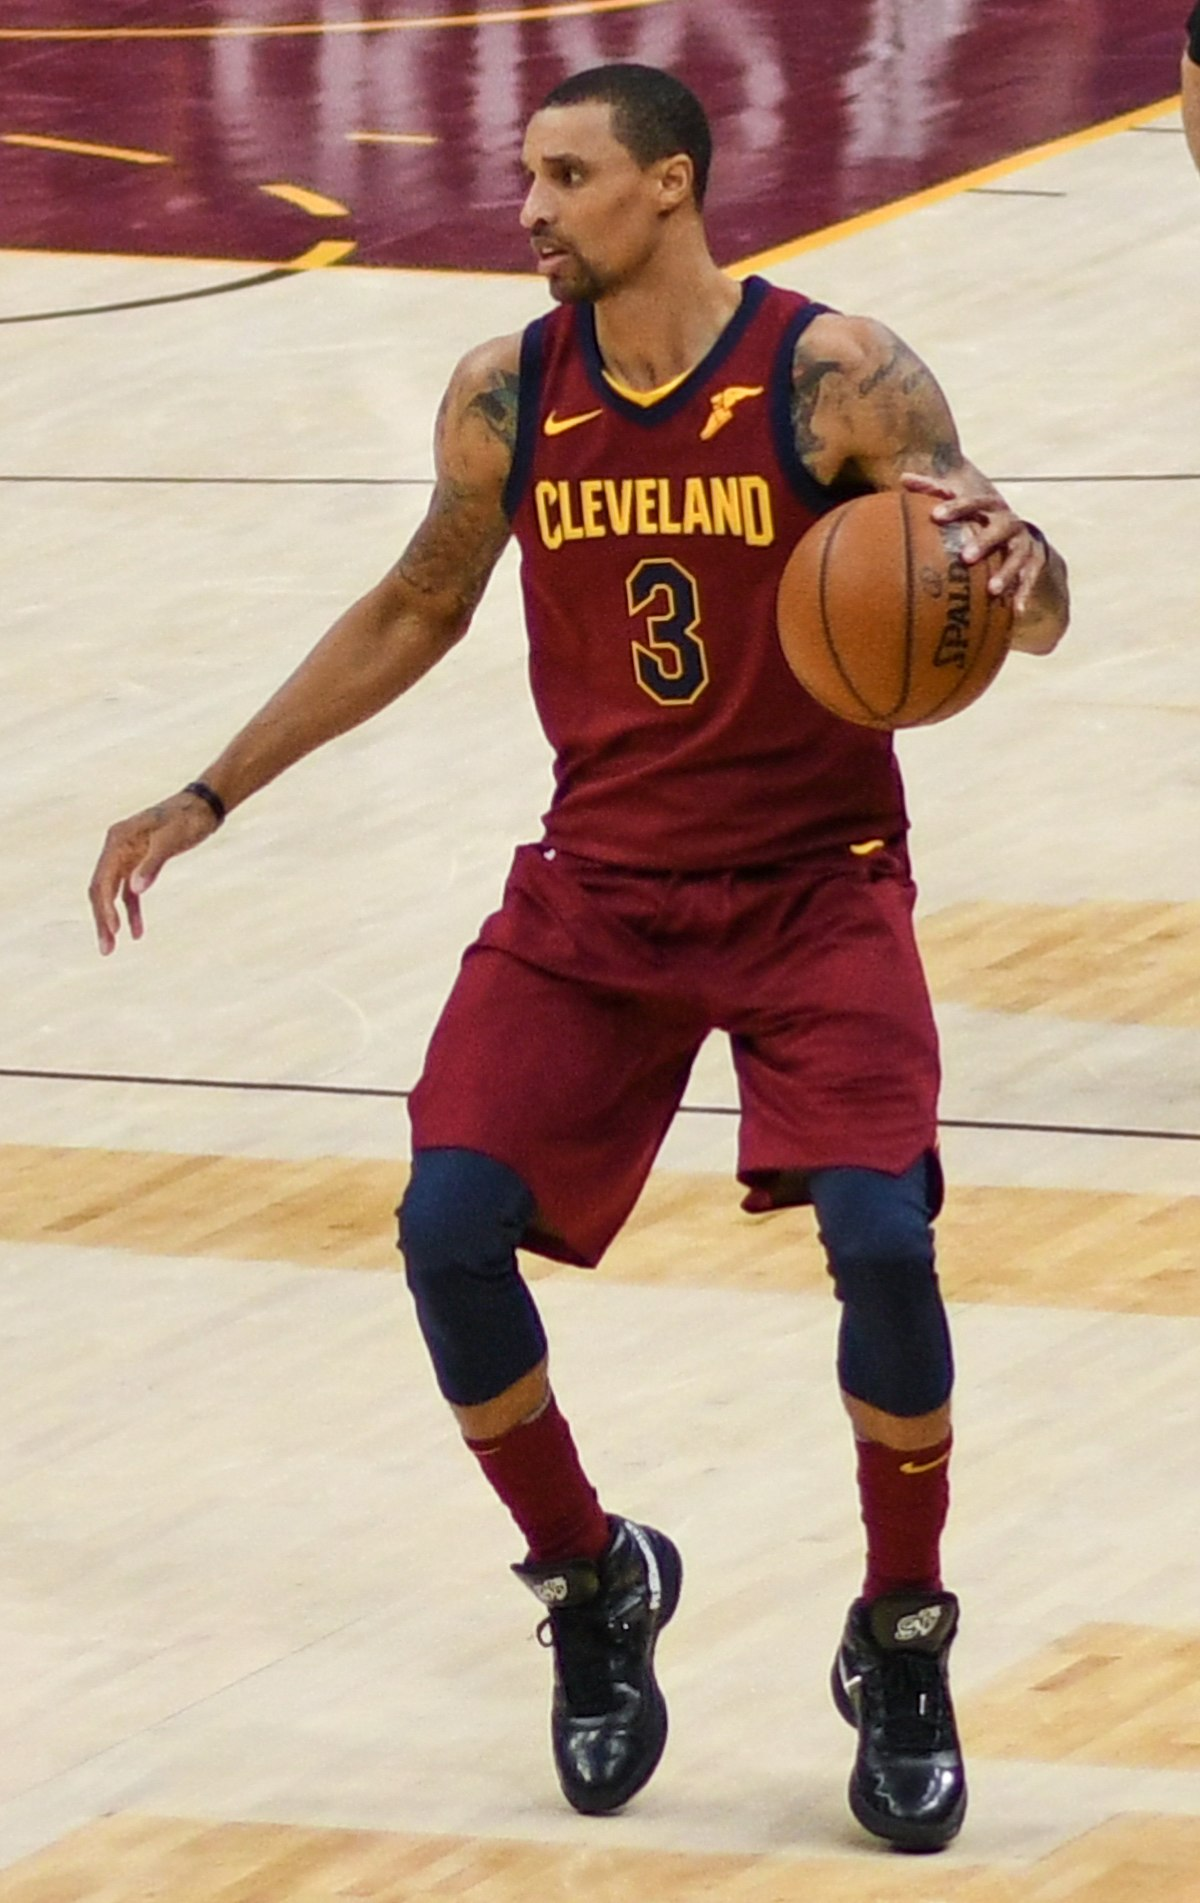 George Hill (basketball) - Wikipedia